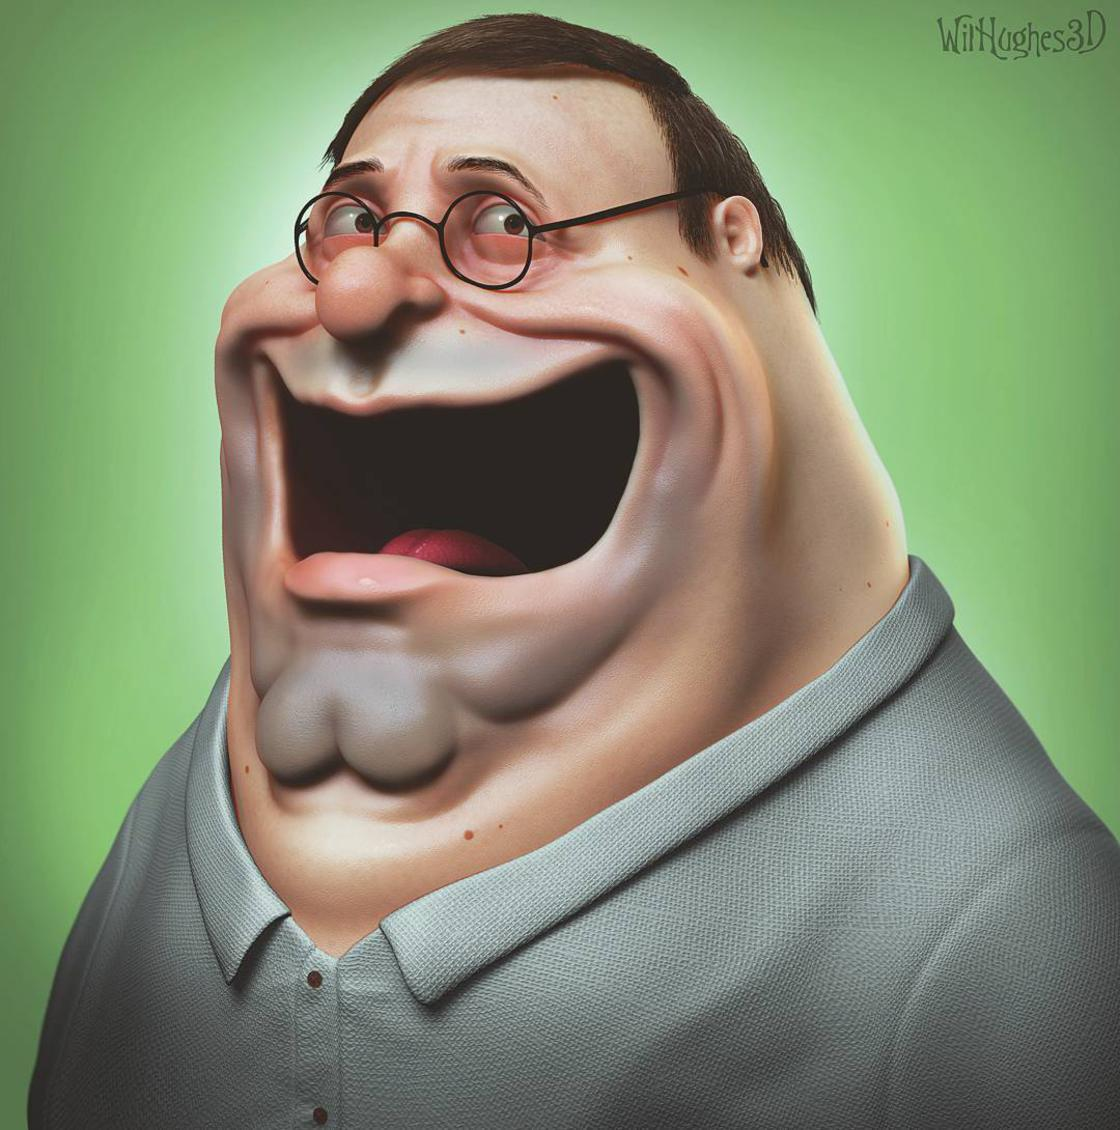 These 3D versions of Pop Culture icons are far too creepy